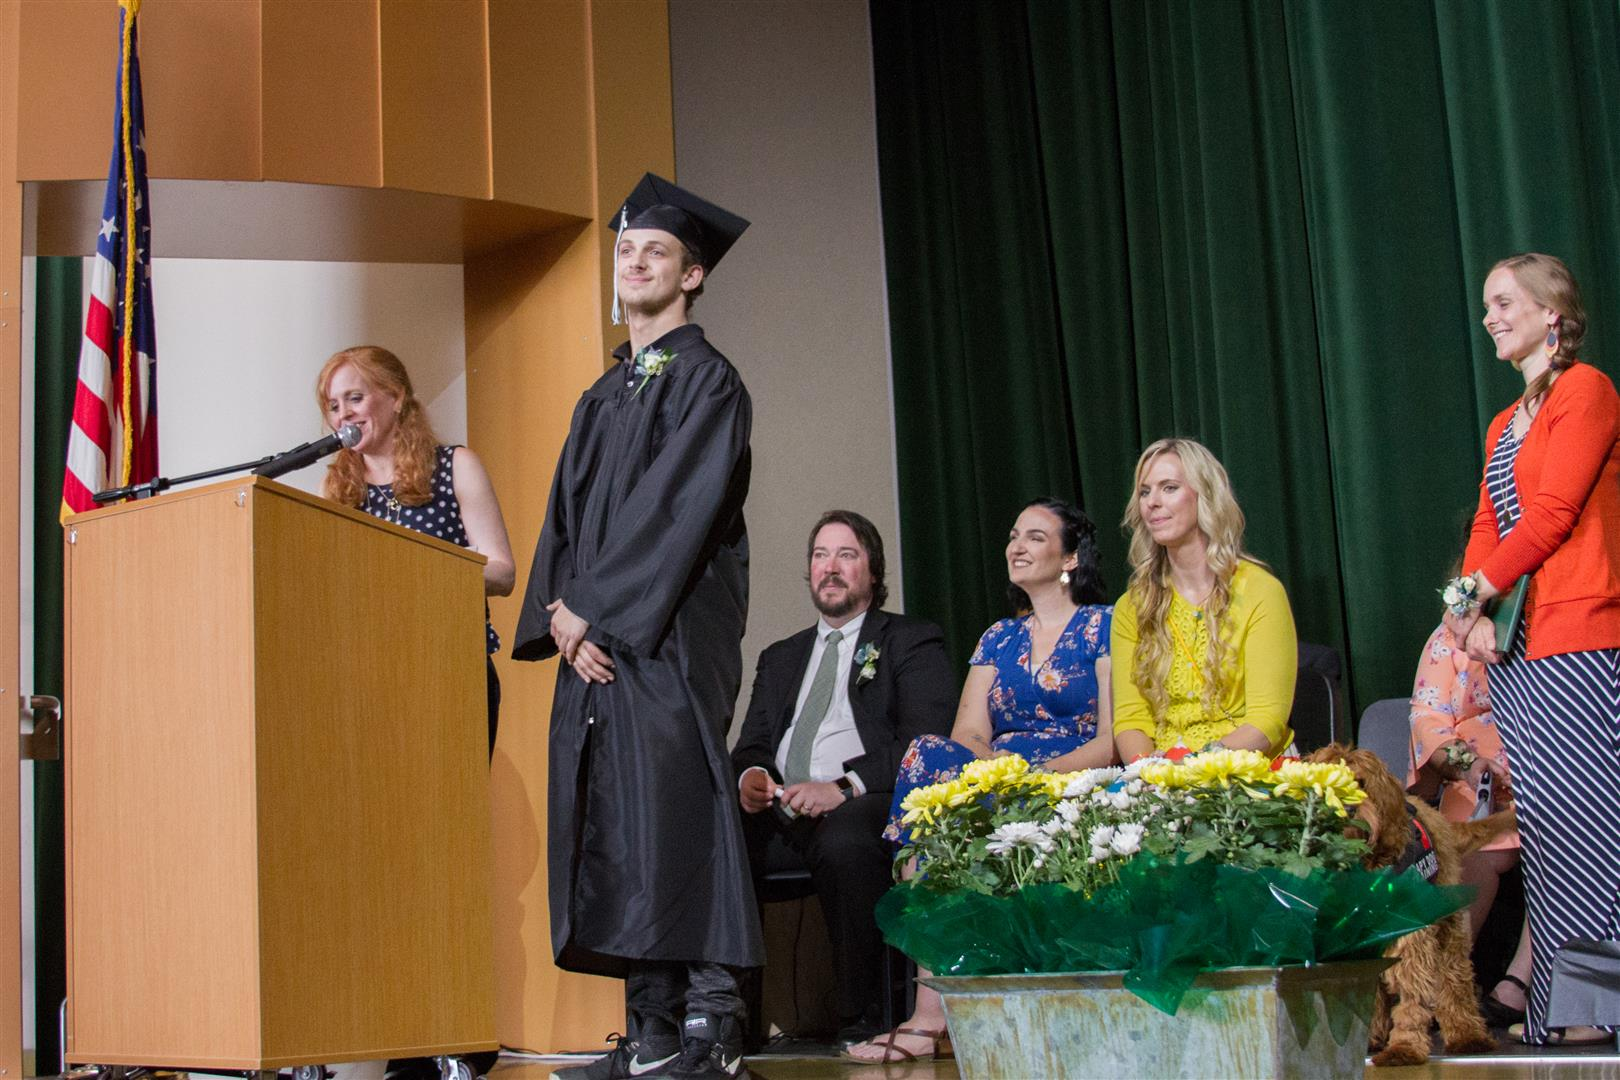 1560450001-team-high-class-of-2019-commencement-22__large_